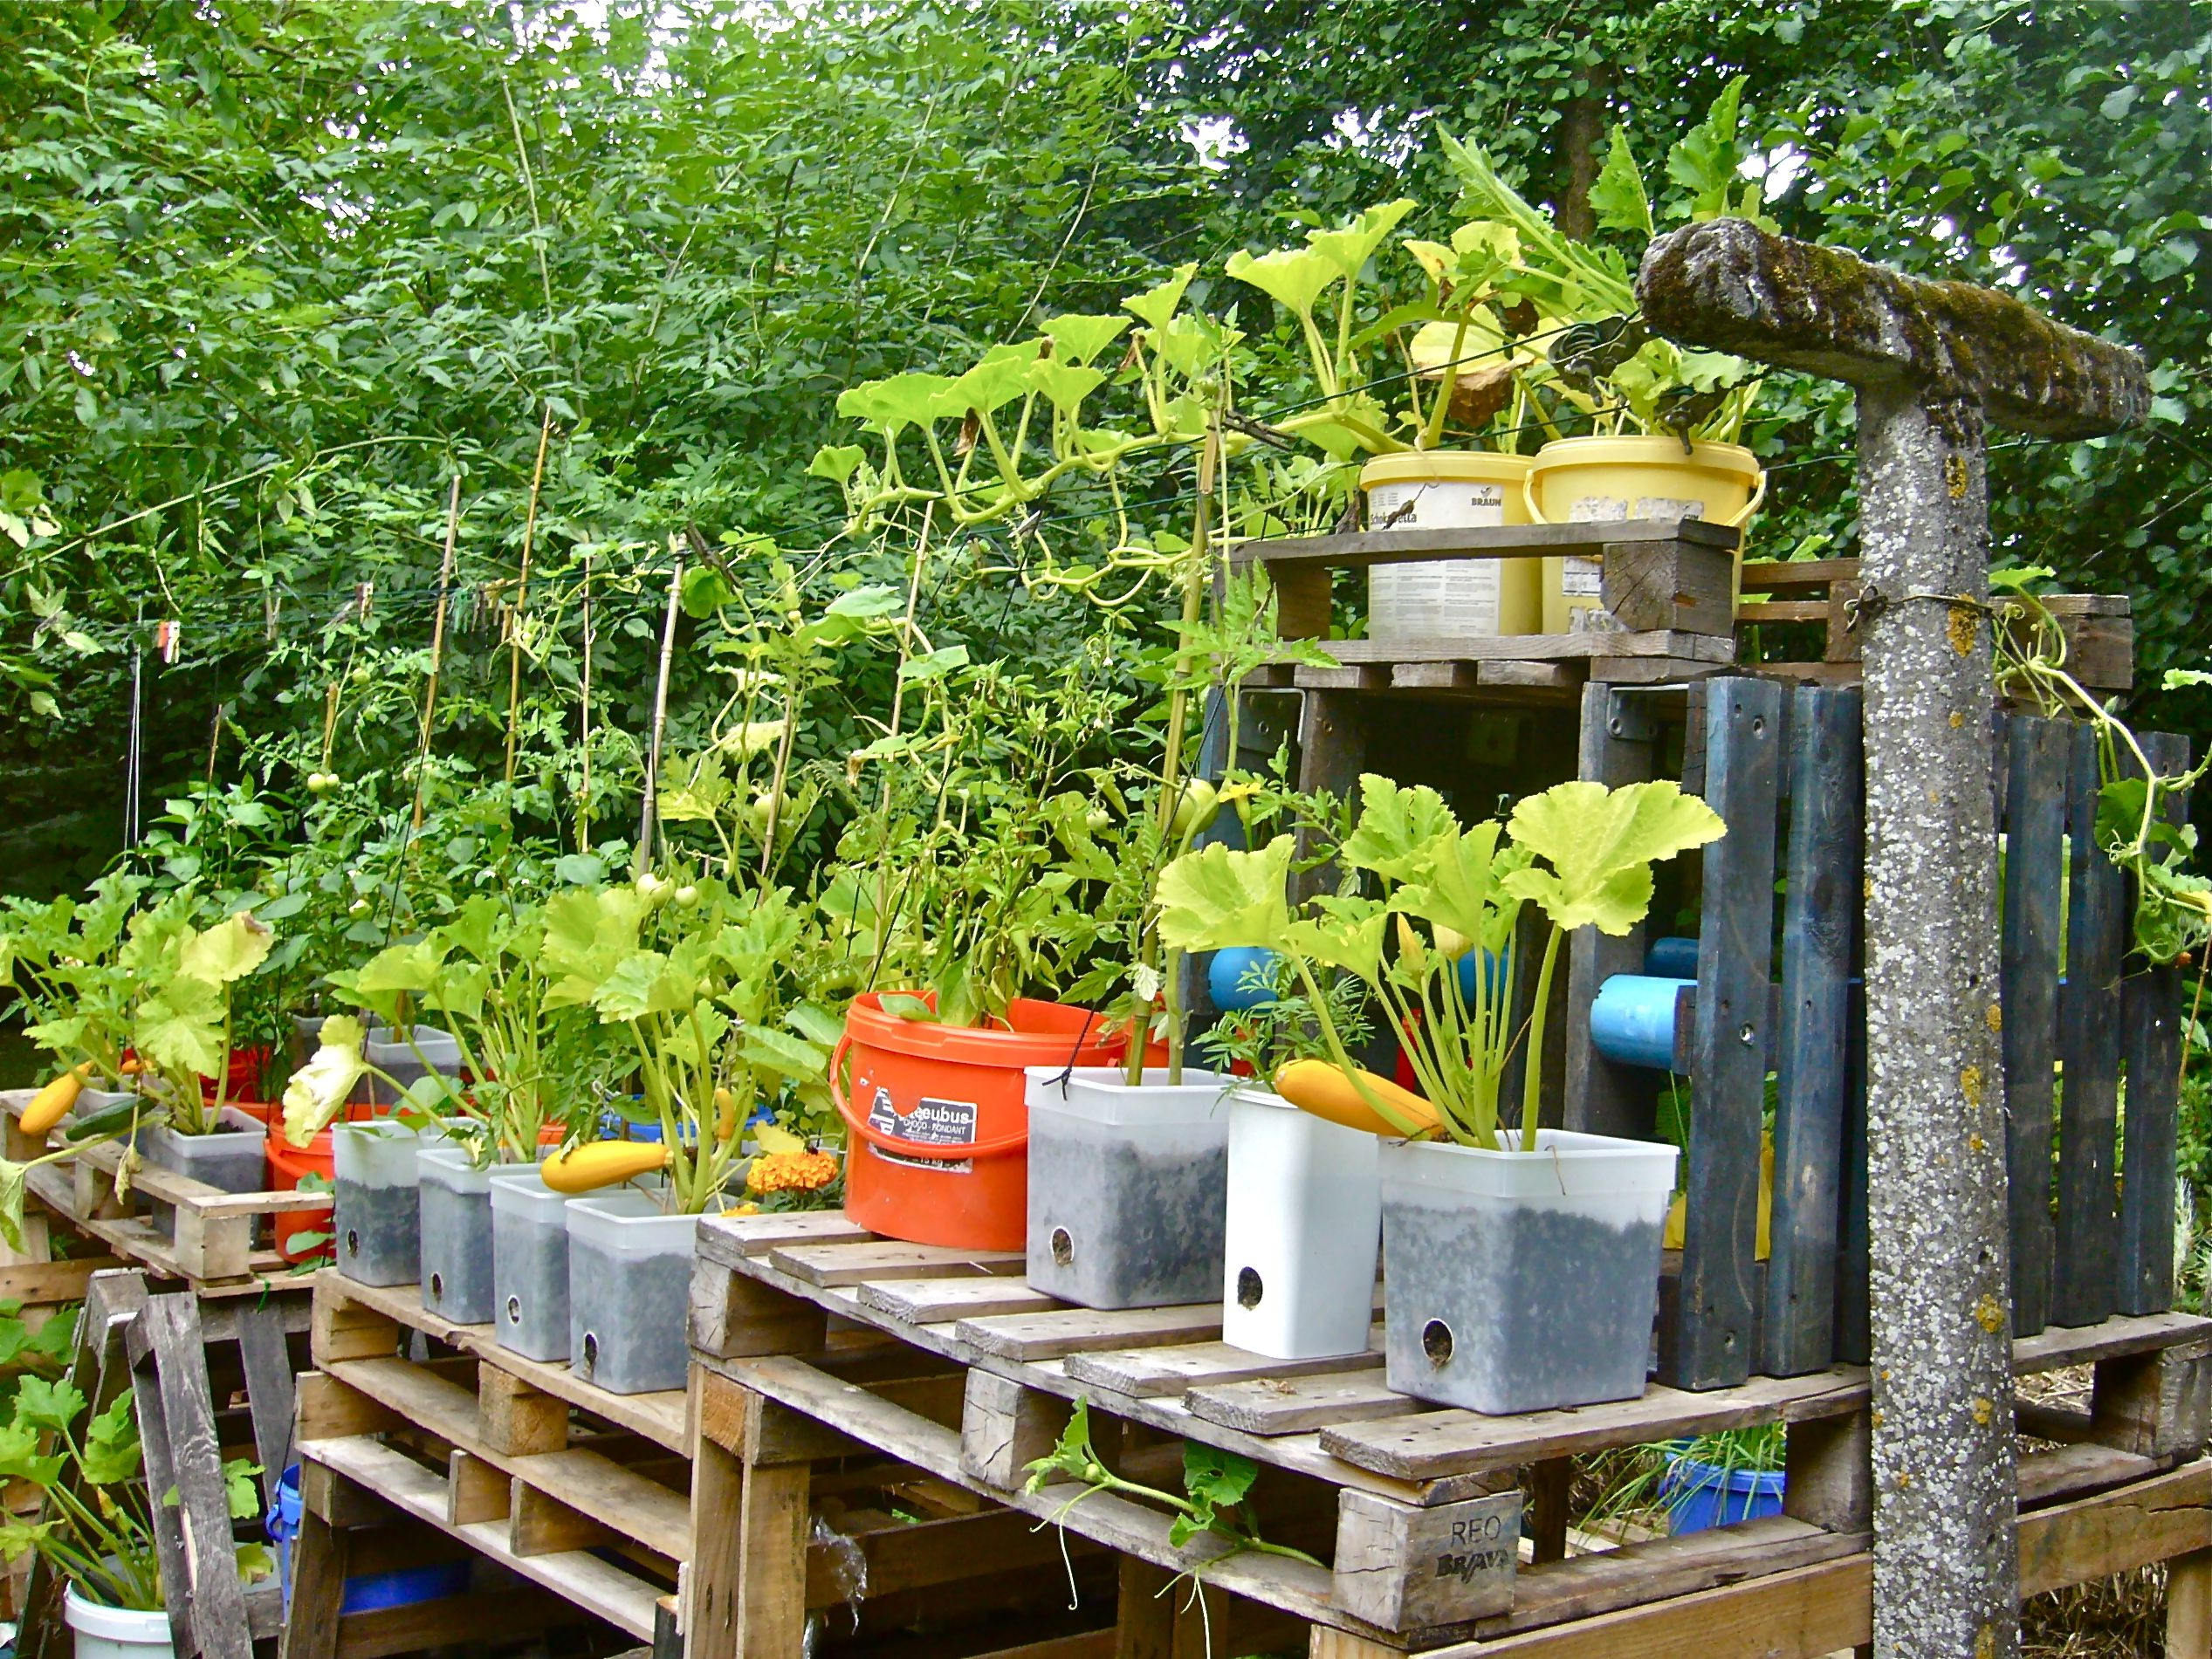 Hunger Is Widespread Despite A Plentiful Supply Of Farmland In Pakistan Irin News Home Vegetable Garden Design Small Vegetable Gardens Garden Ideas For Renters